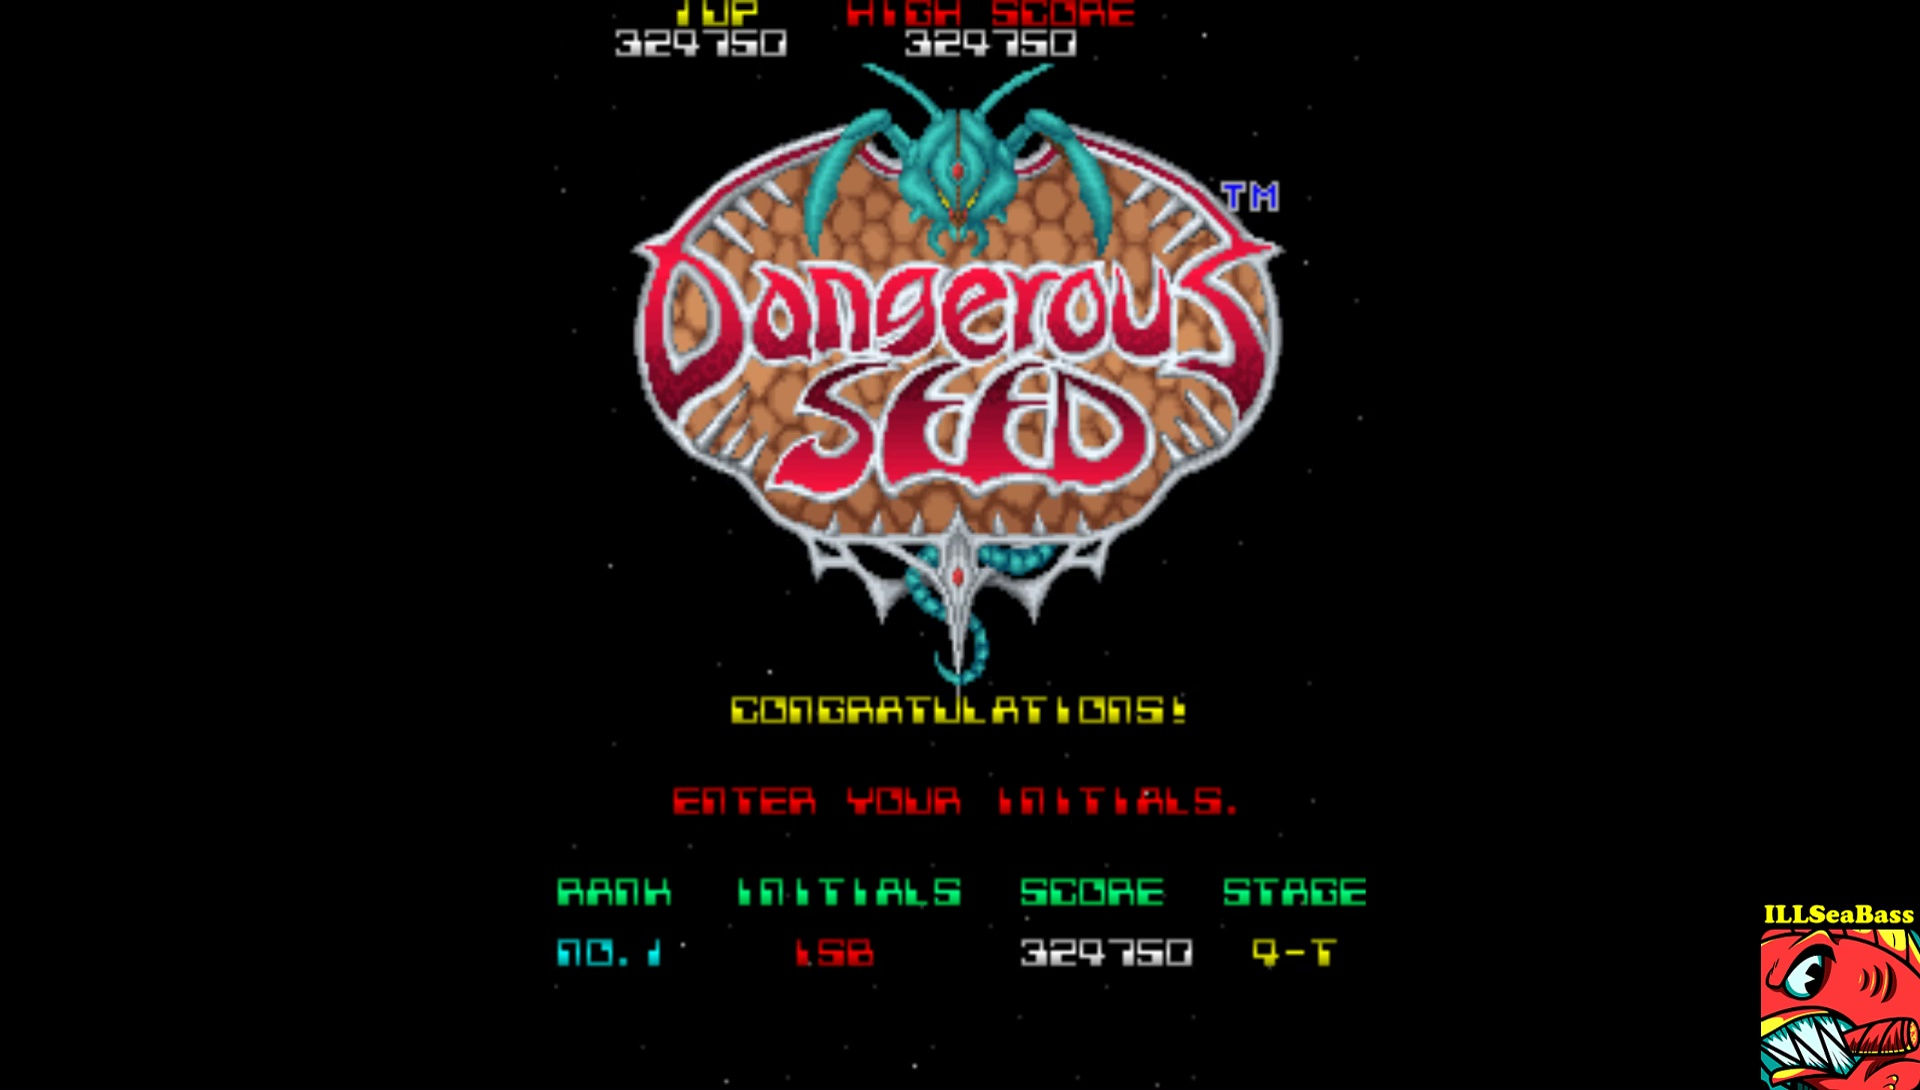 ILLSeaBass: Dangerous Seed [Japan] [dangseed] (Arcade Emulated / M.A.M.E.) 329,750 points on 2017-08-13 00:43:30